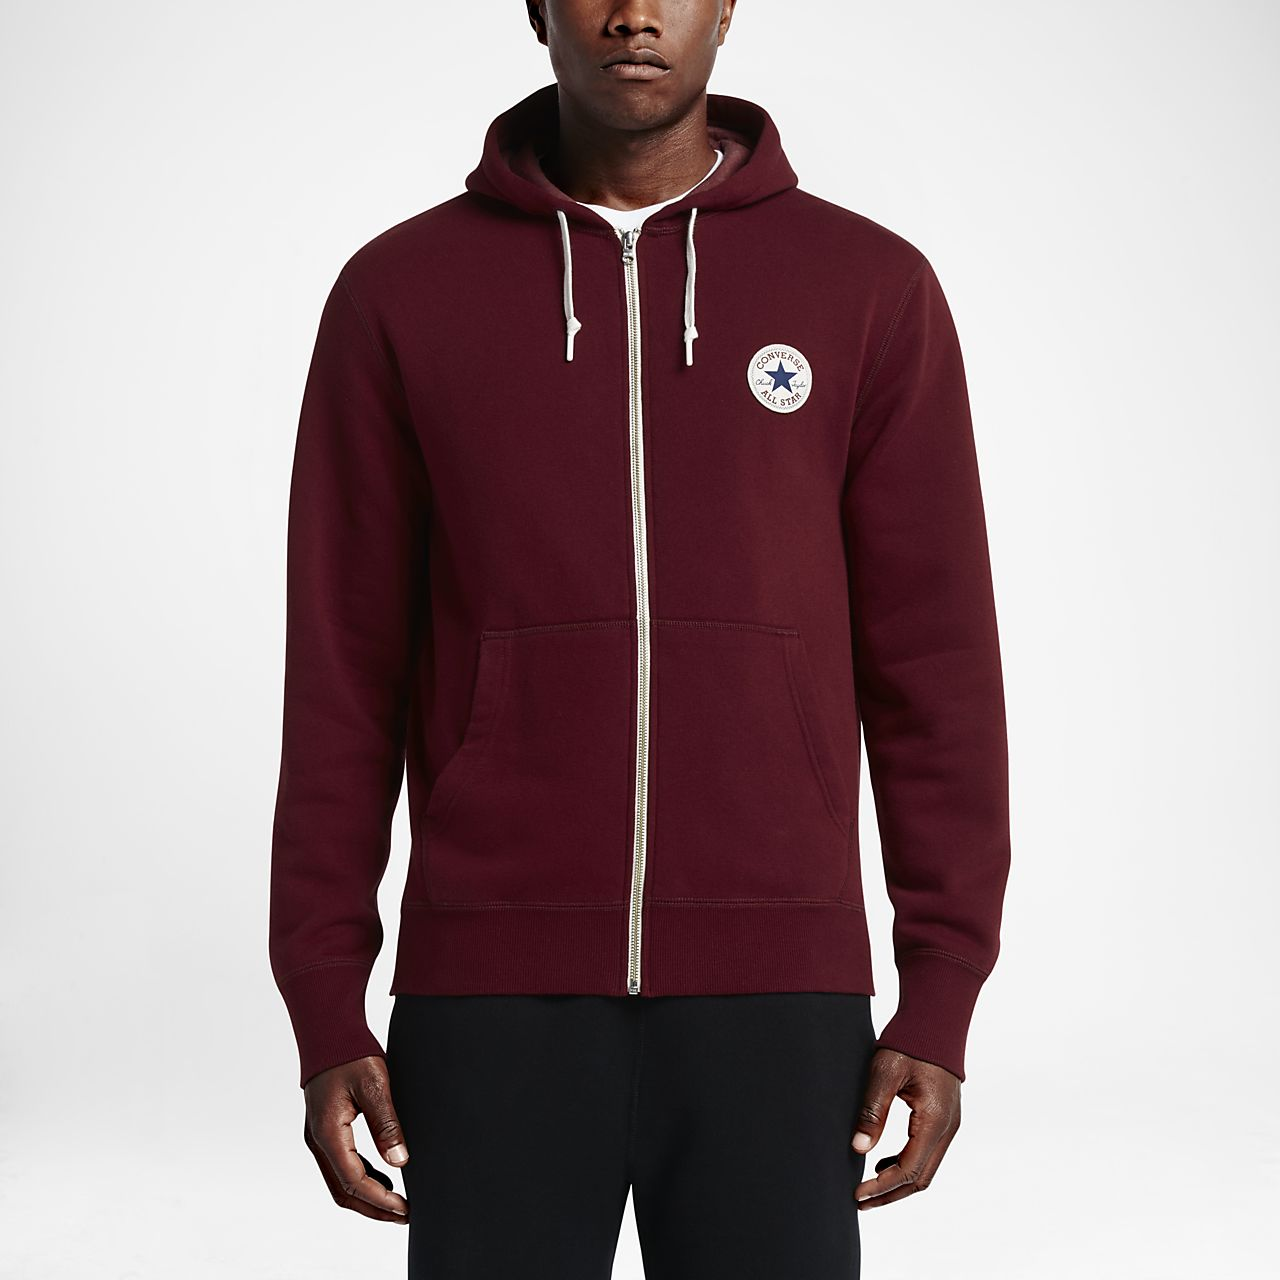 9dfdfc1fd0fd Converse Chuck Patch Mens Hooded Top Sportswear Mens Sportswear  COLOUR-burgundy